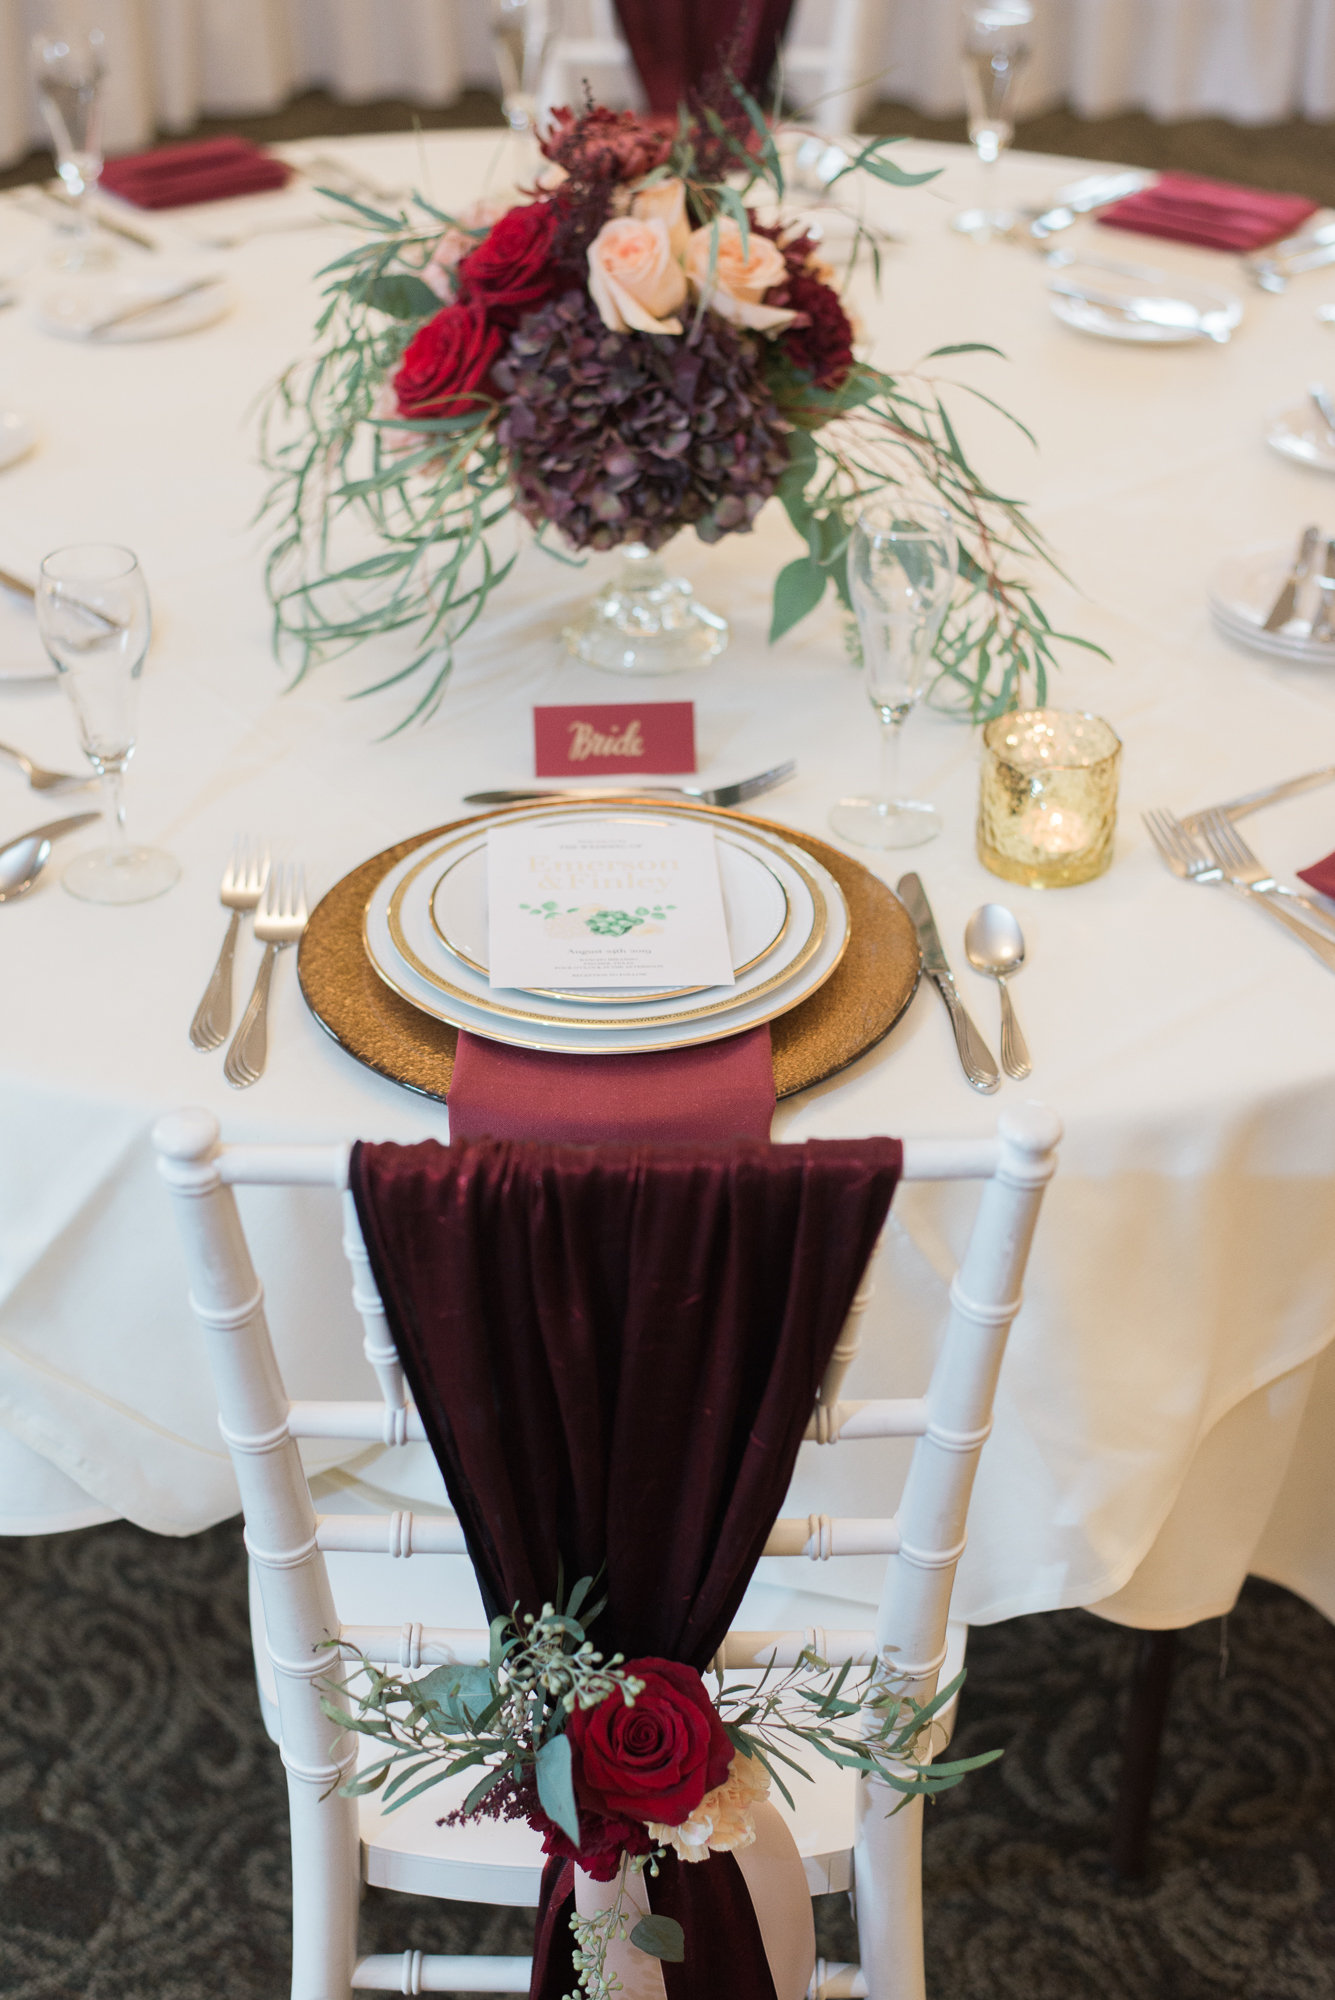 Don't forget the little details, the chairs and fabric swag from  Ultimate Events  were the perfect compliment to the table setting and flowers!